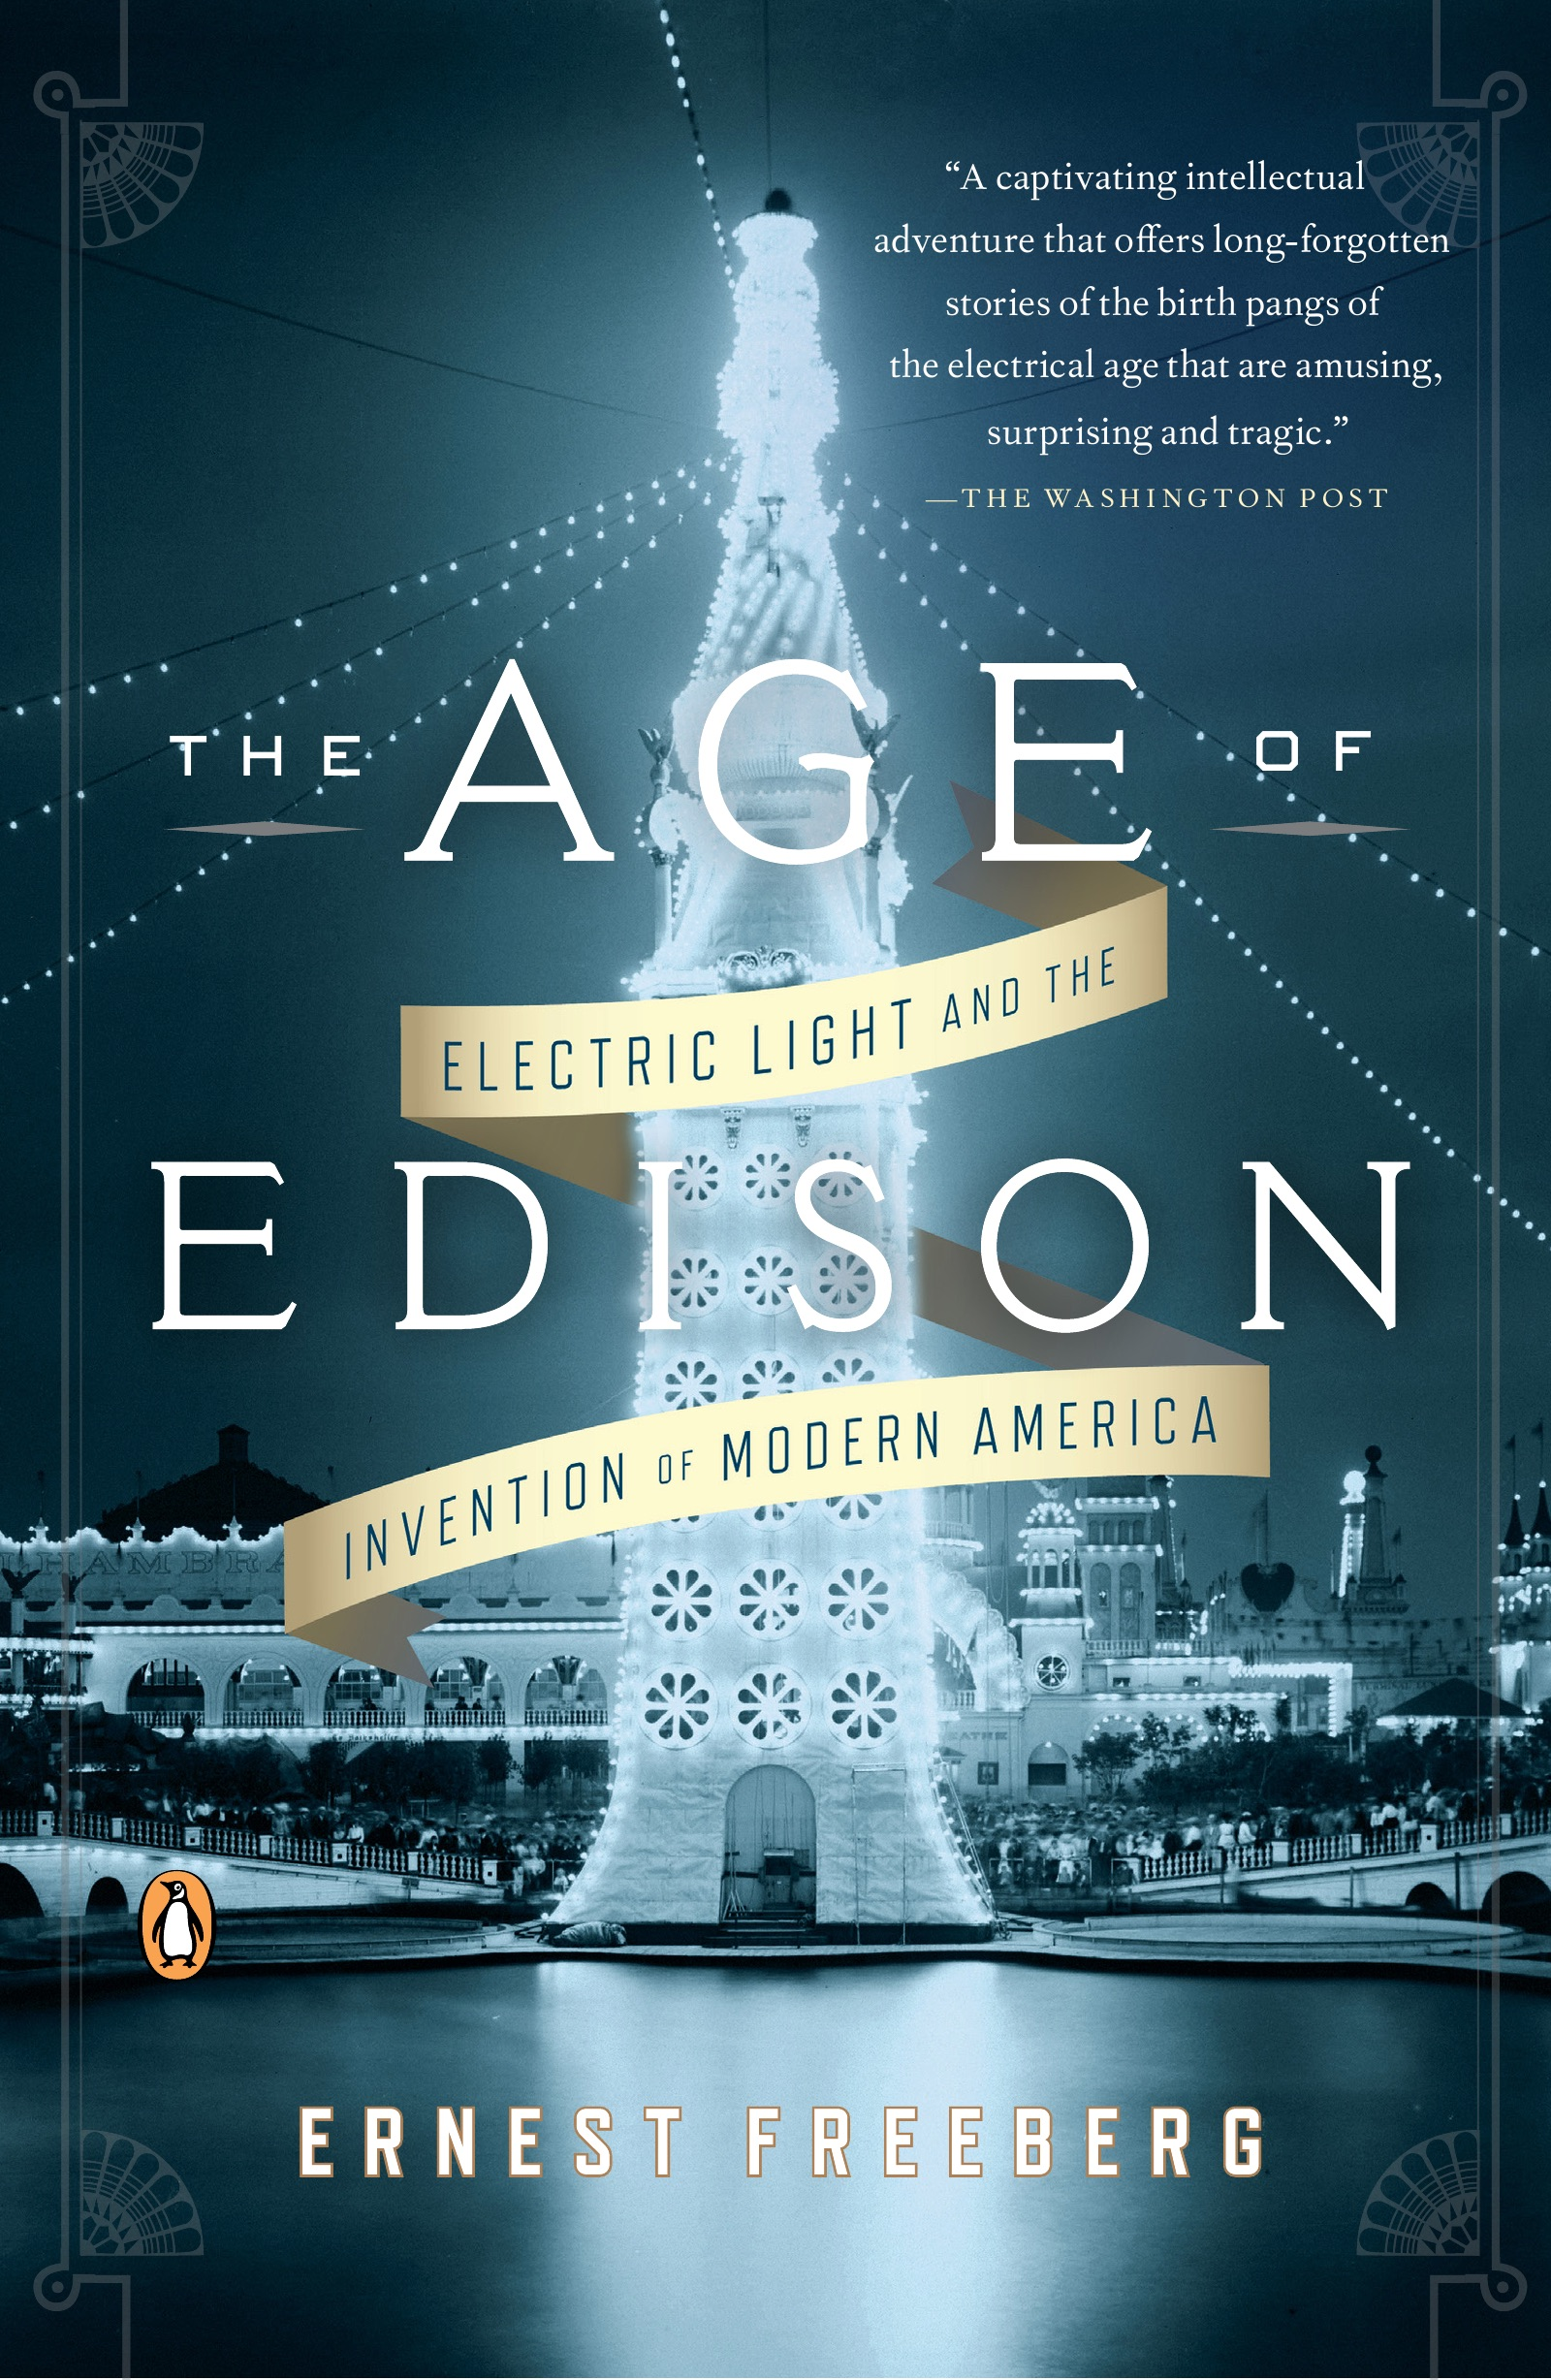 Book Cover of The Age of Edison